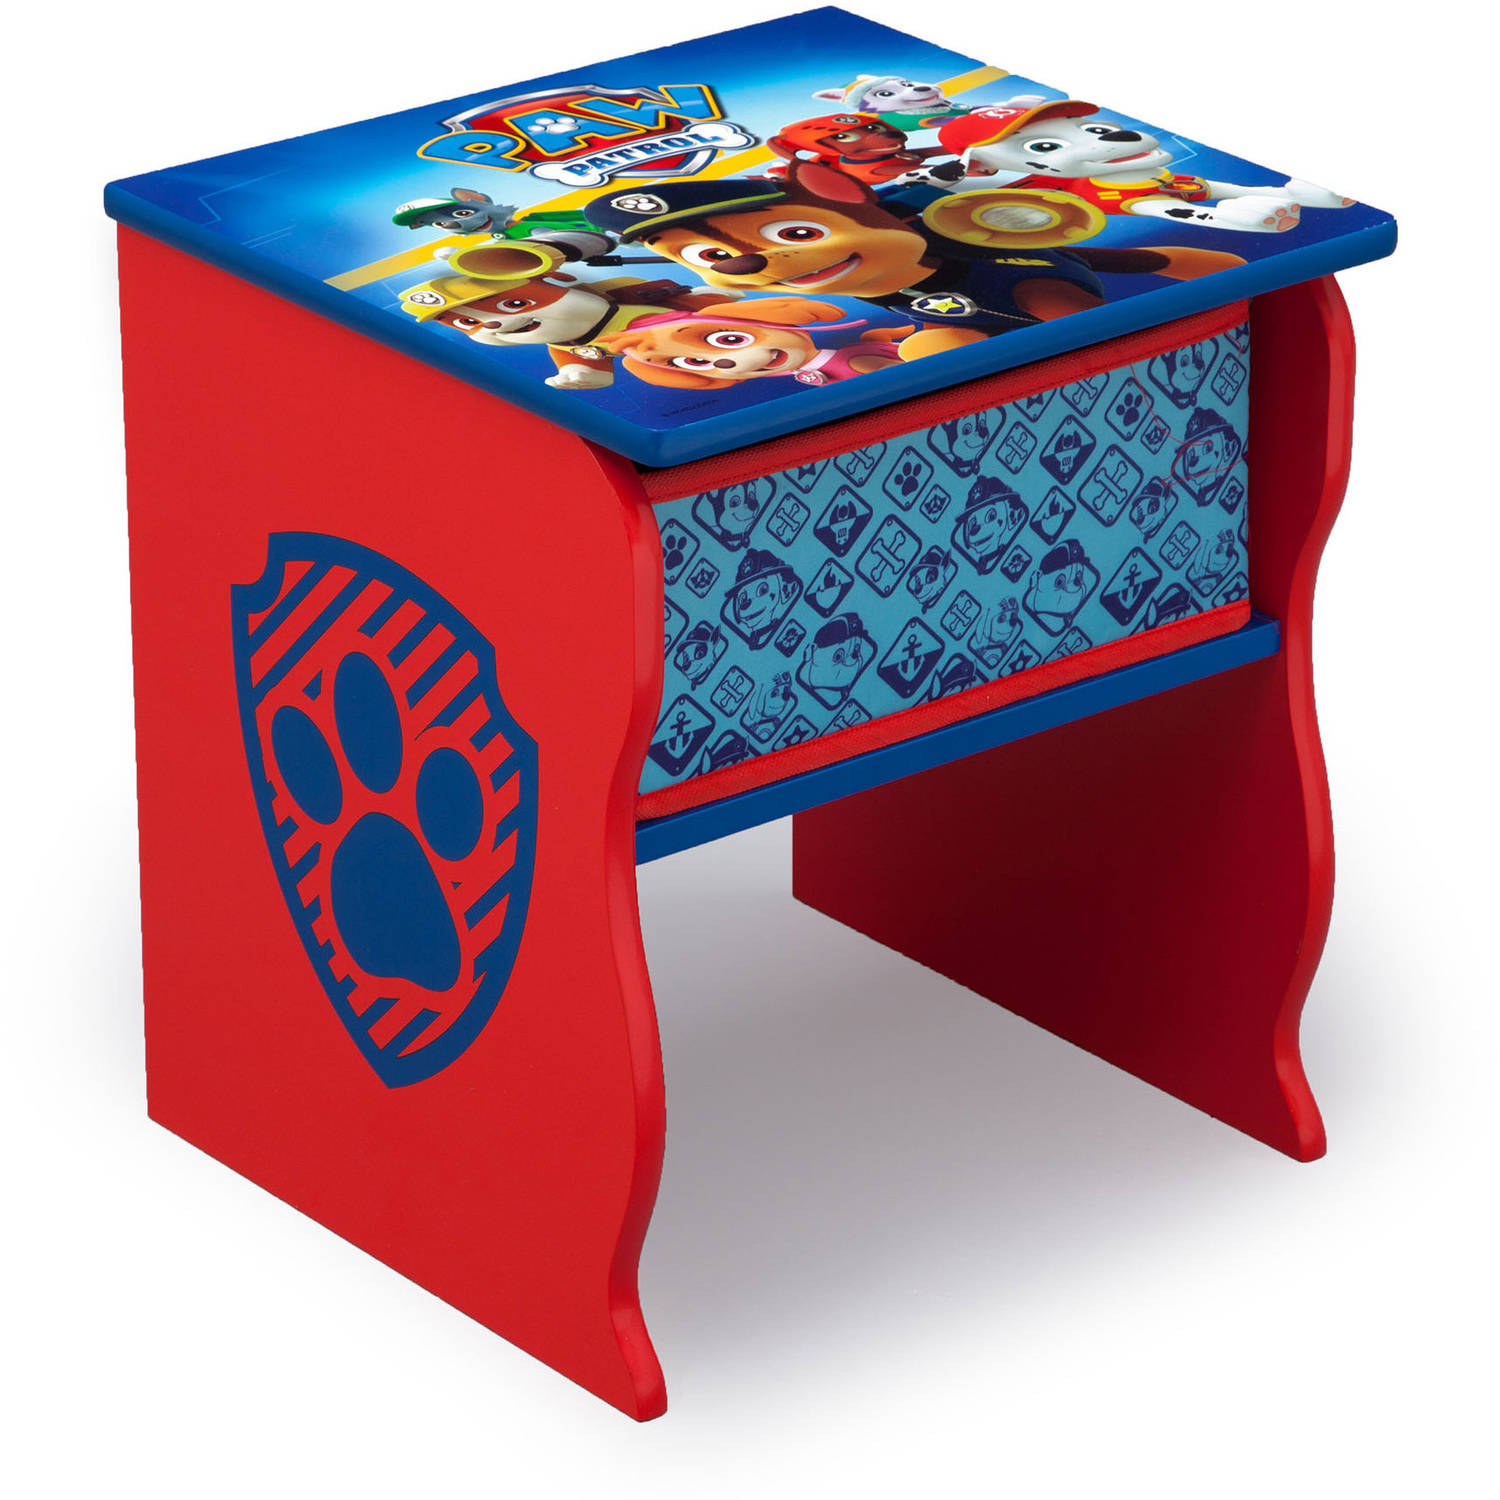 Nick Jr. PAW Patrol Side Table with Storage